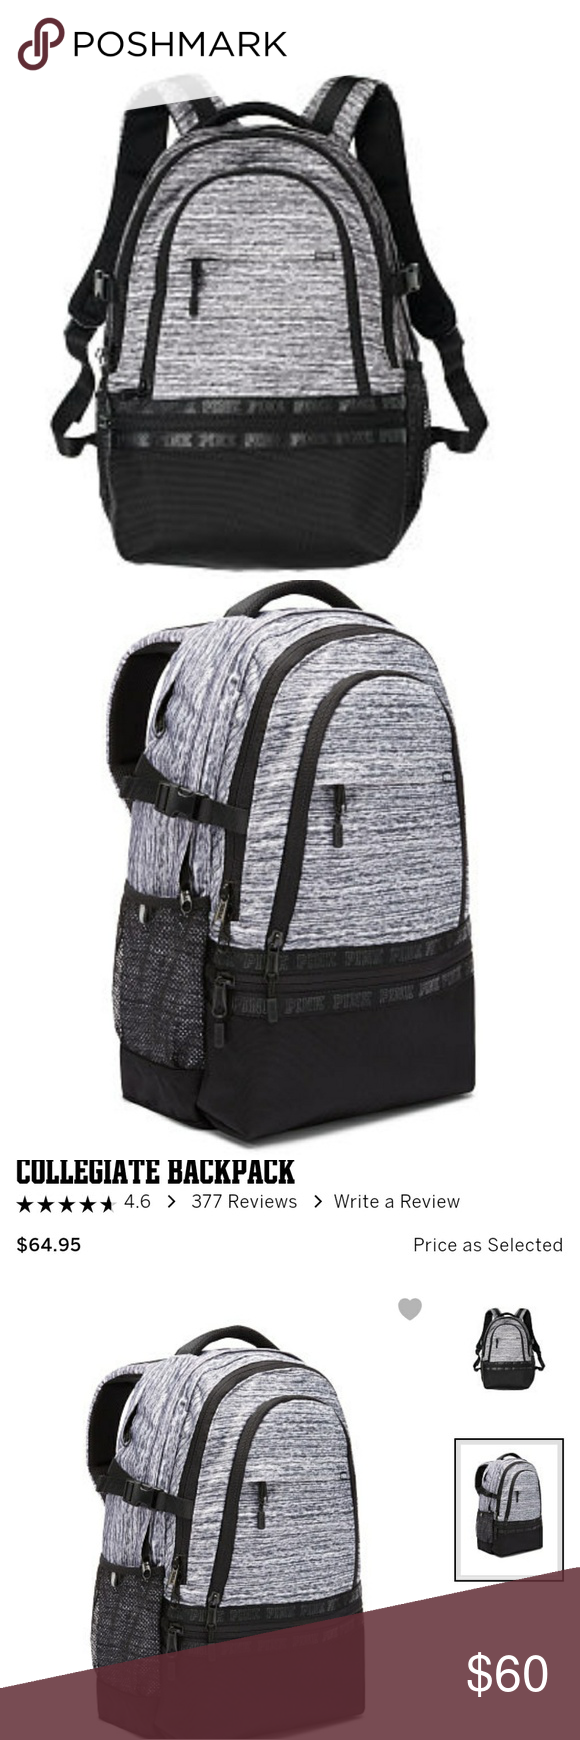 c0f420bfb6 Victoria Secret Pink Collegiate Backpack Review- Fenix Toulouse Handball